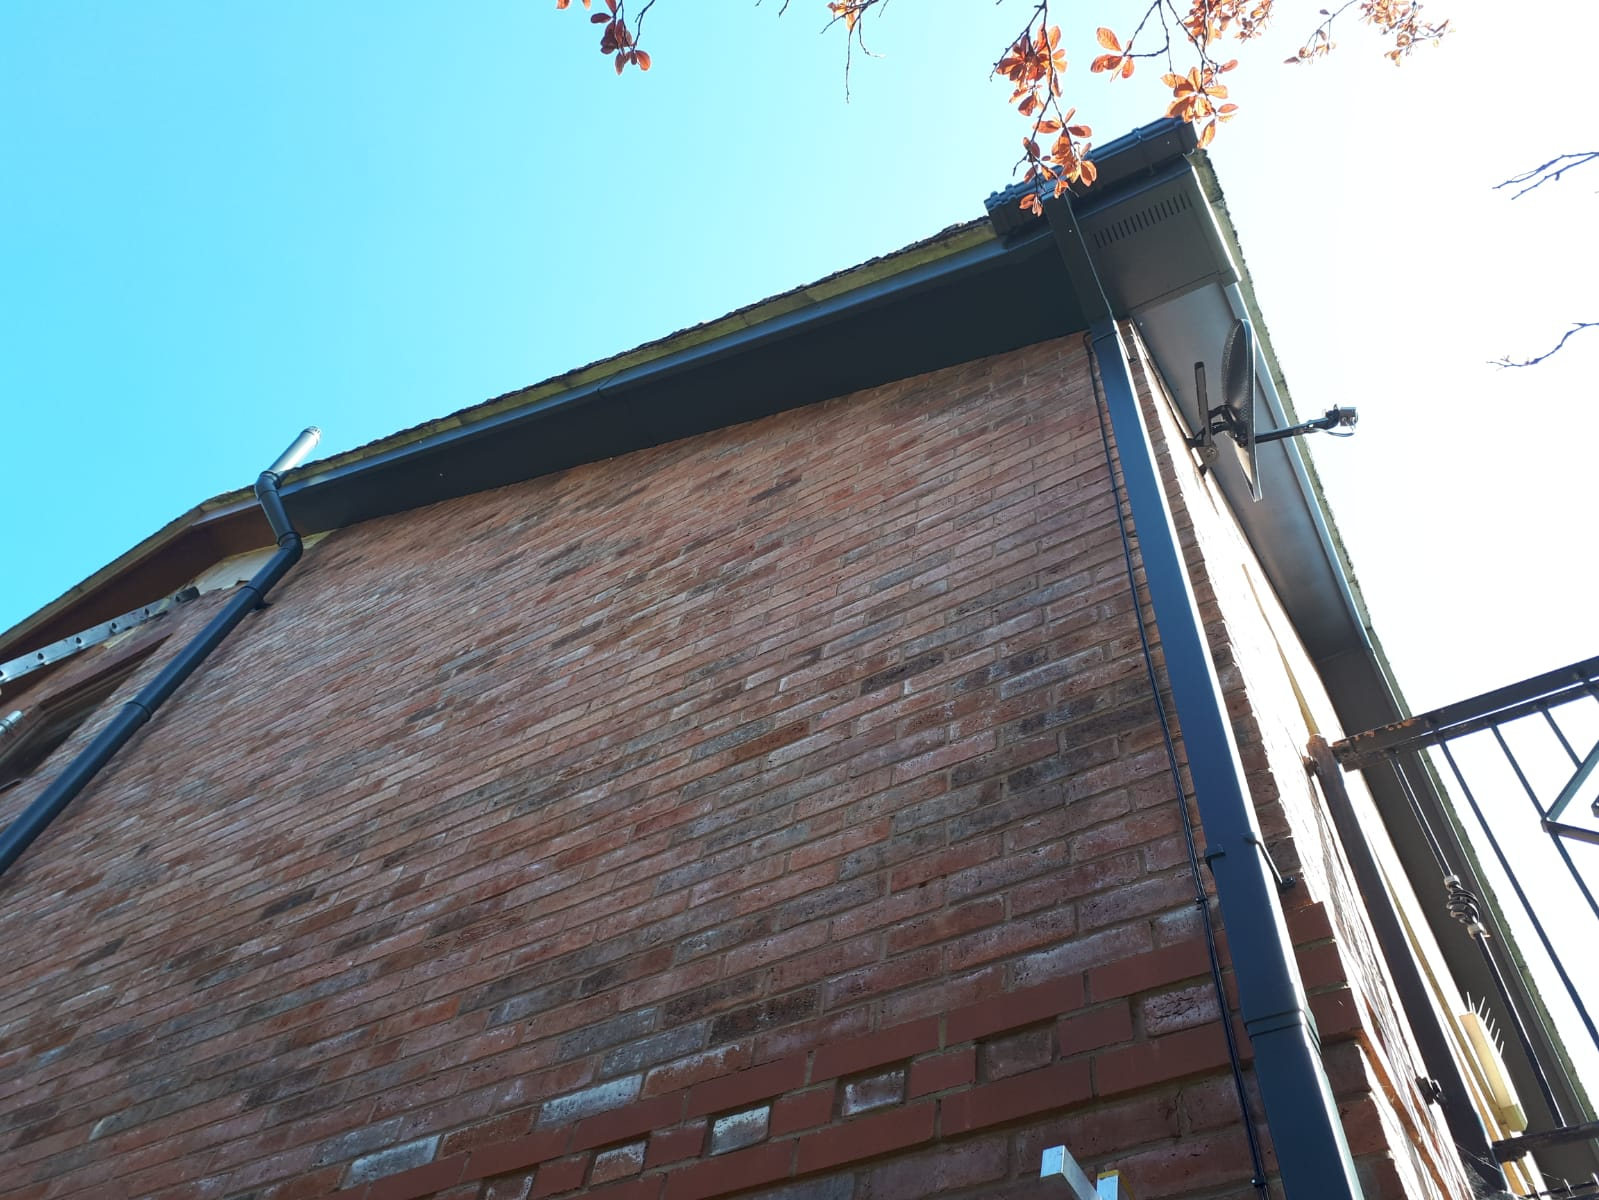 uPVC Gutter, Fascia and Soffit Painting and Spraying